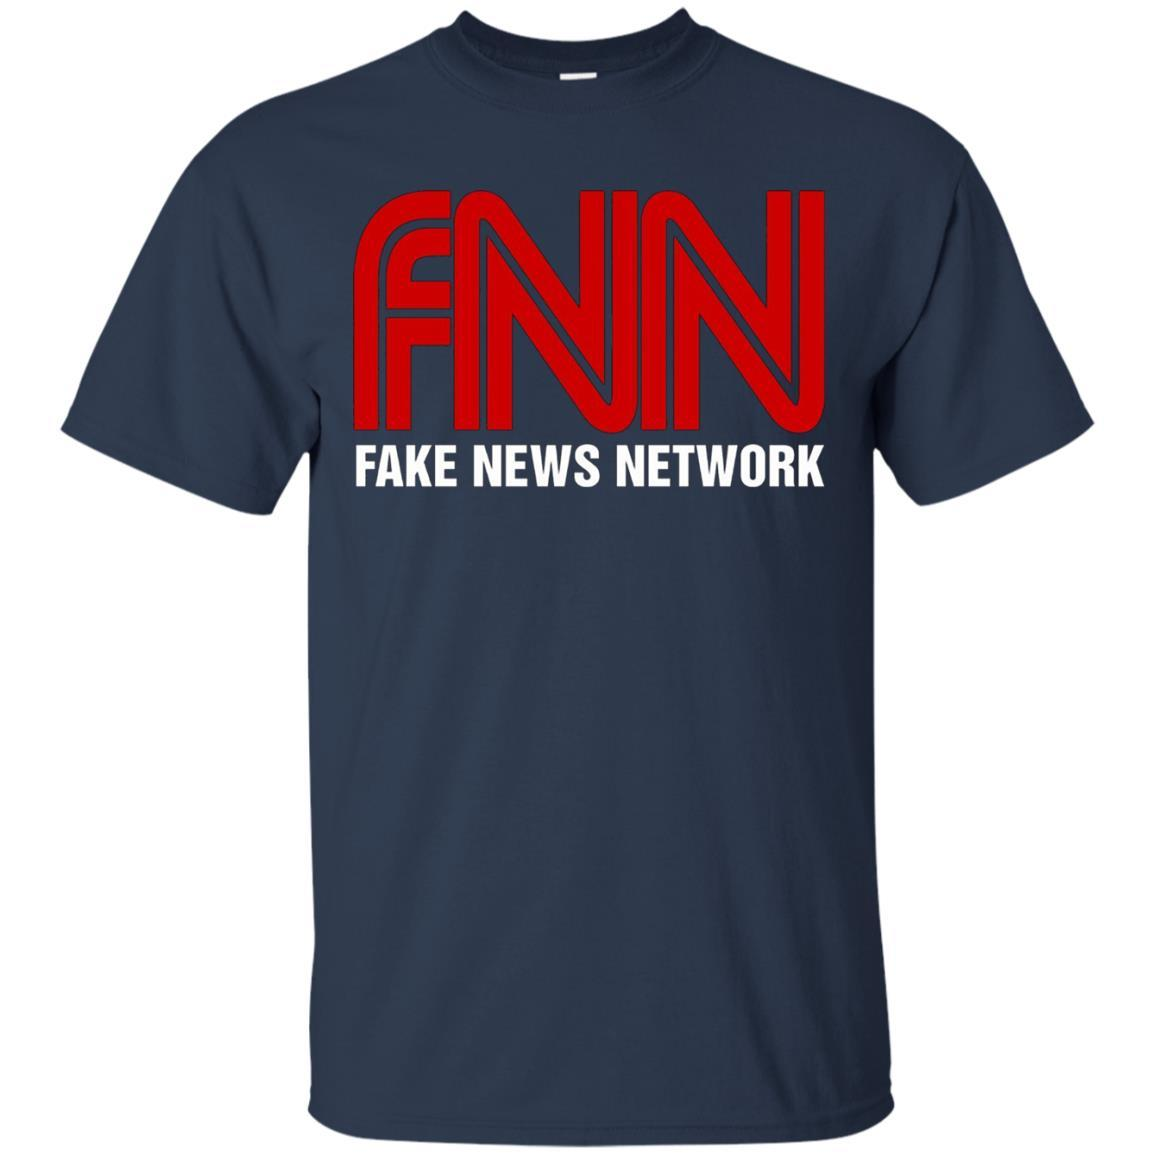 Fake News Network T-Shirt - Funny FNN Logo Humor Quote Tee Navy / 5XL